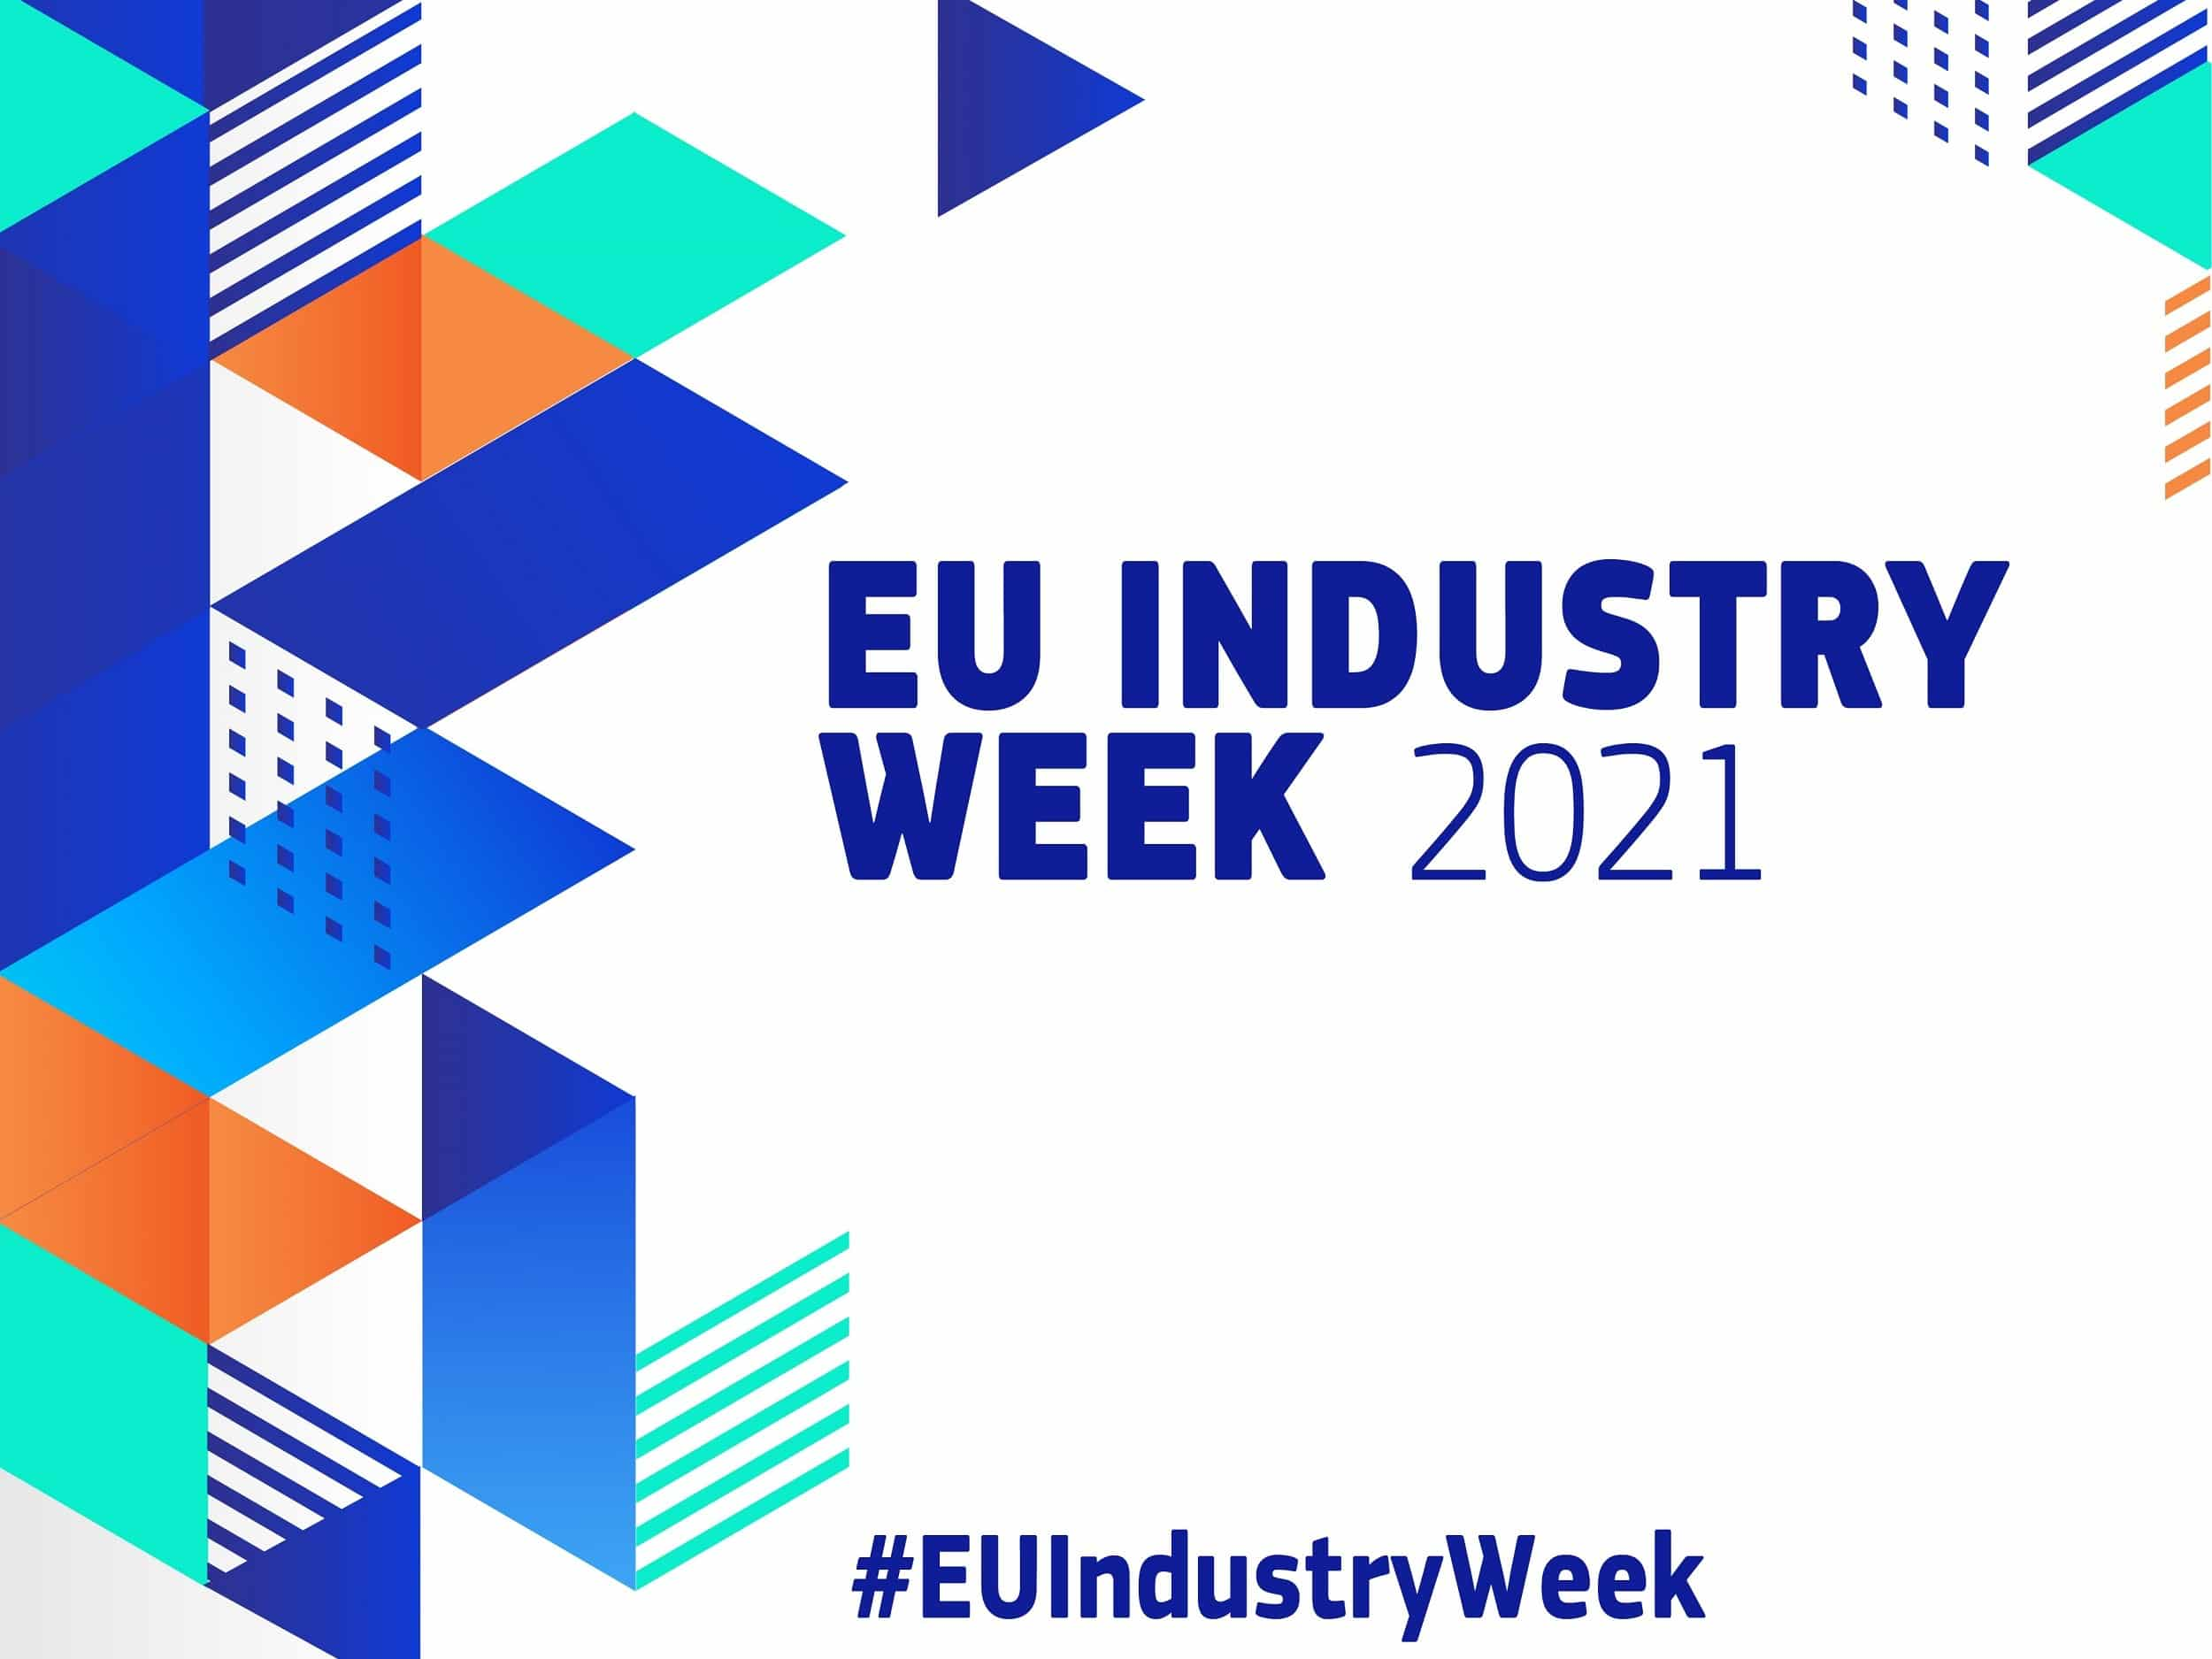 EU Industry Week 2021